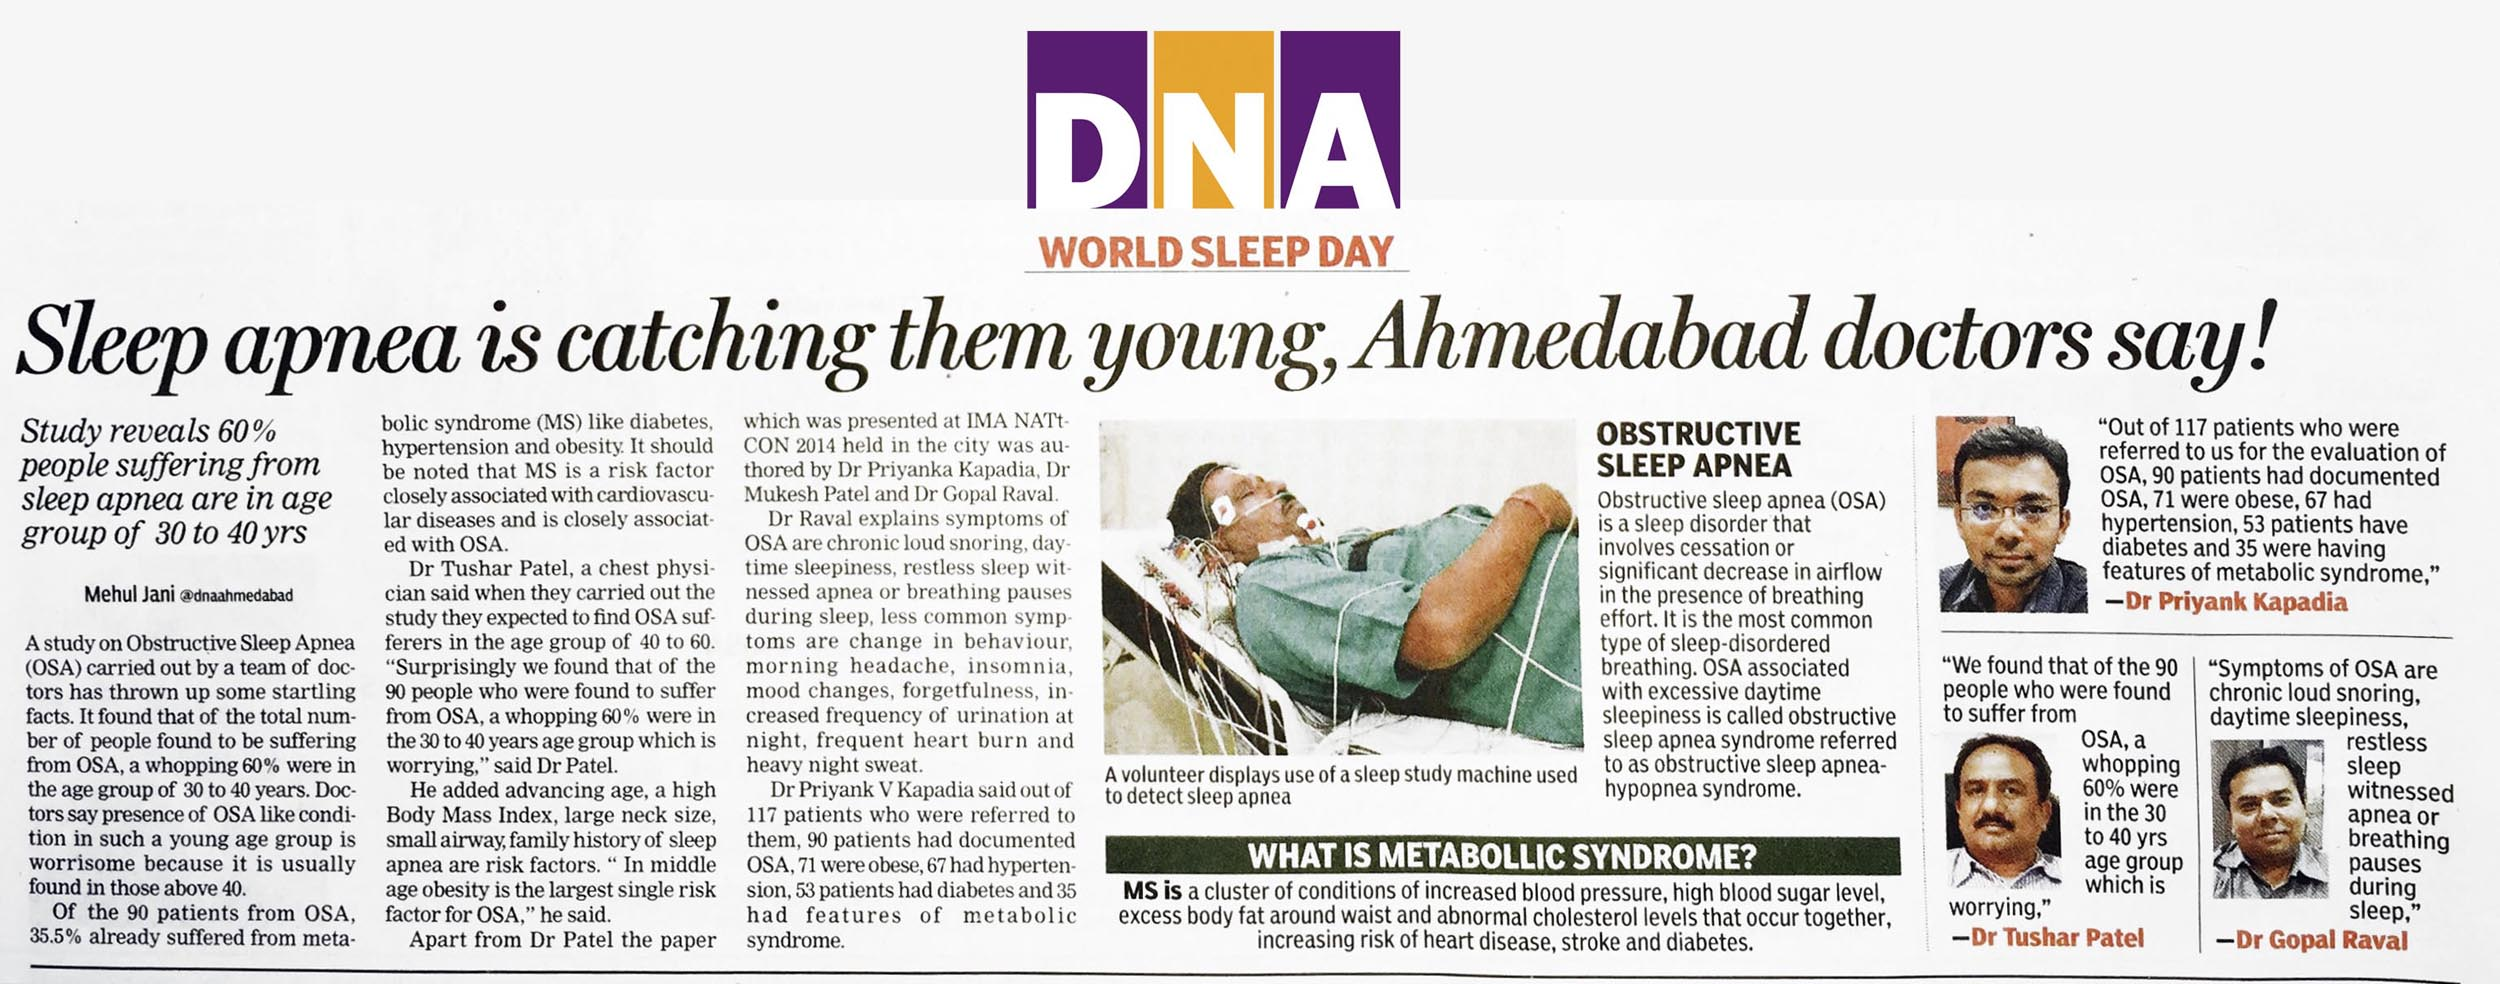 press world sleep dayDNA News Papr